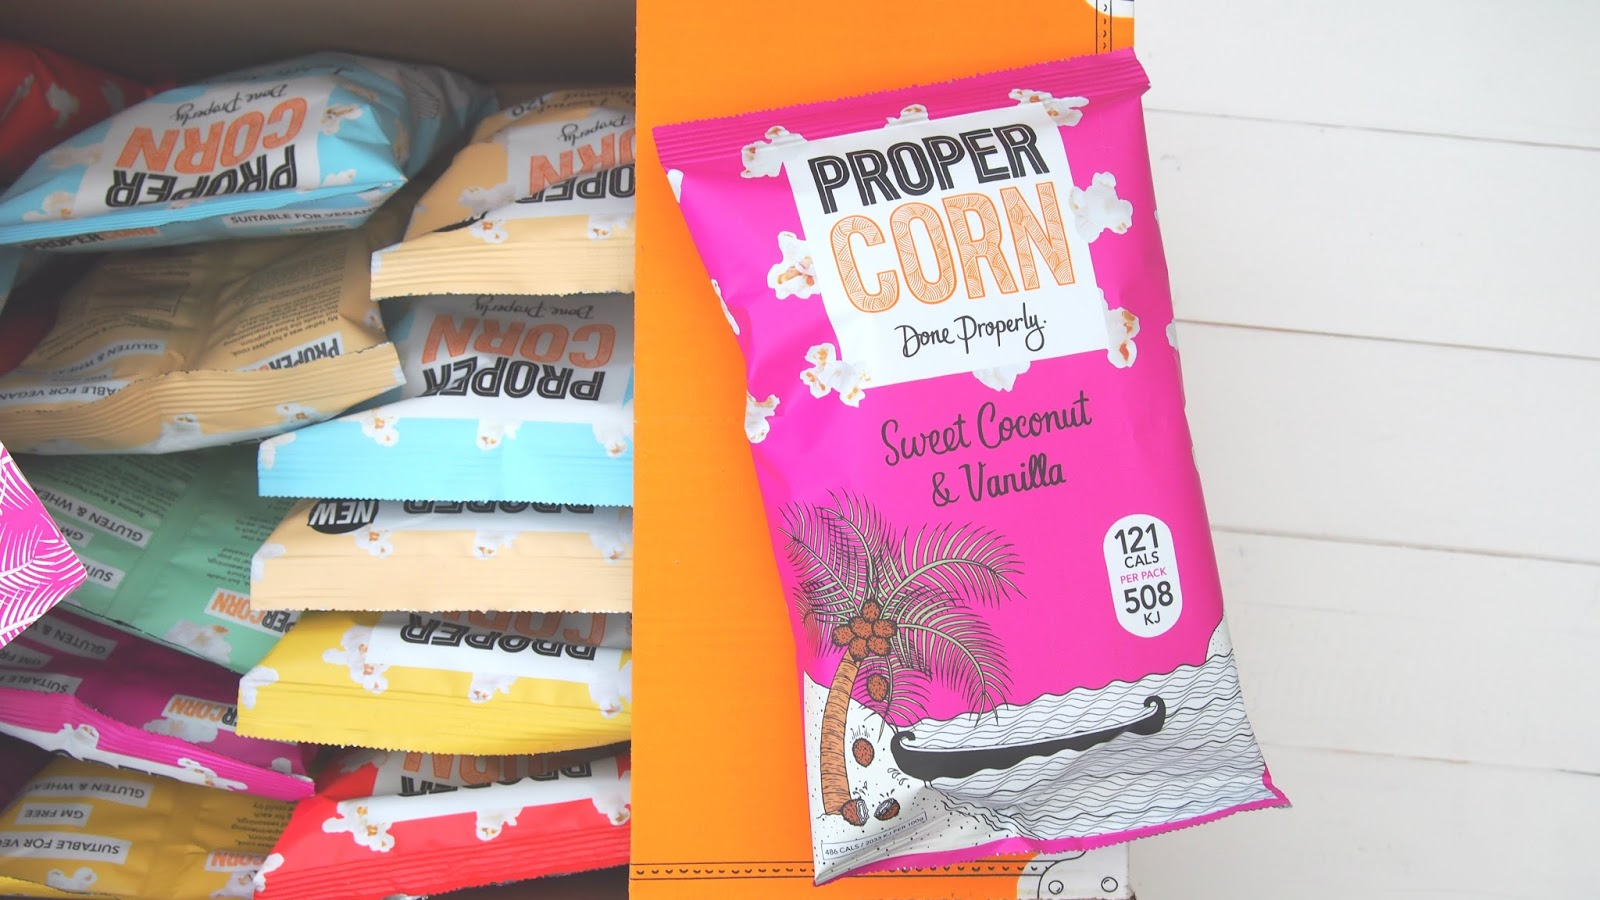 Sweet Vanilla and Coconut PROPERCORN